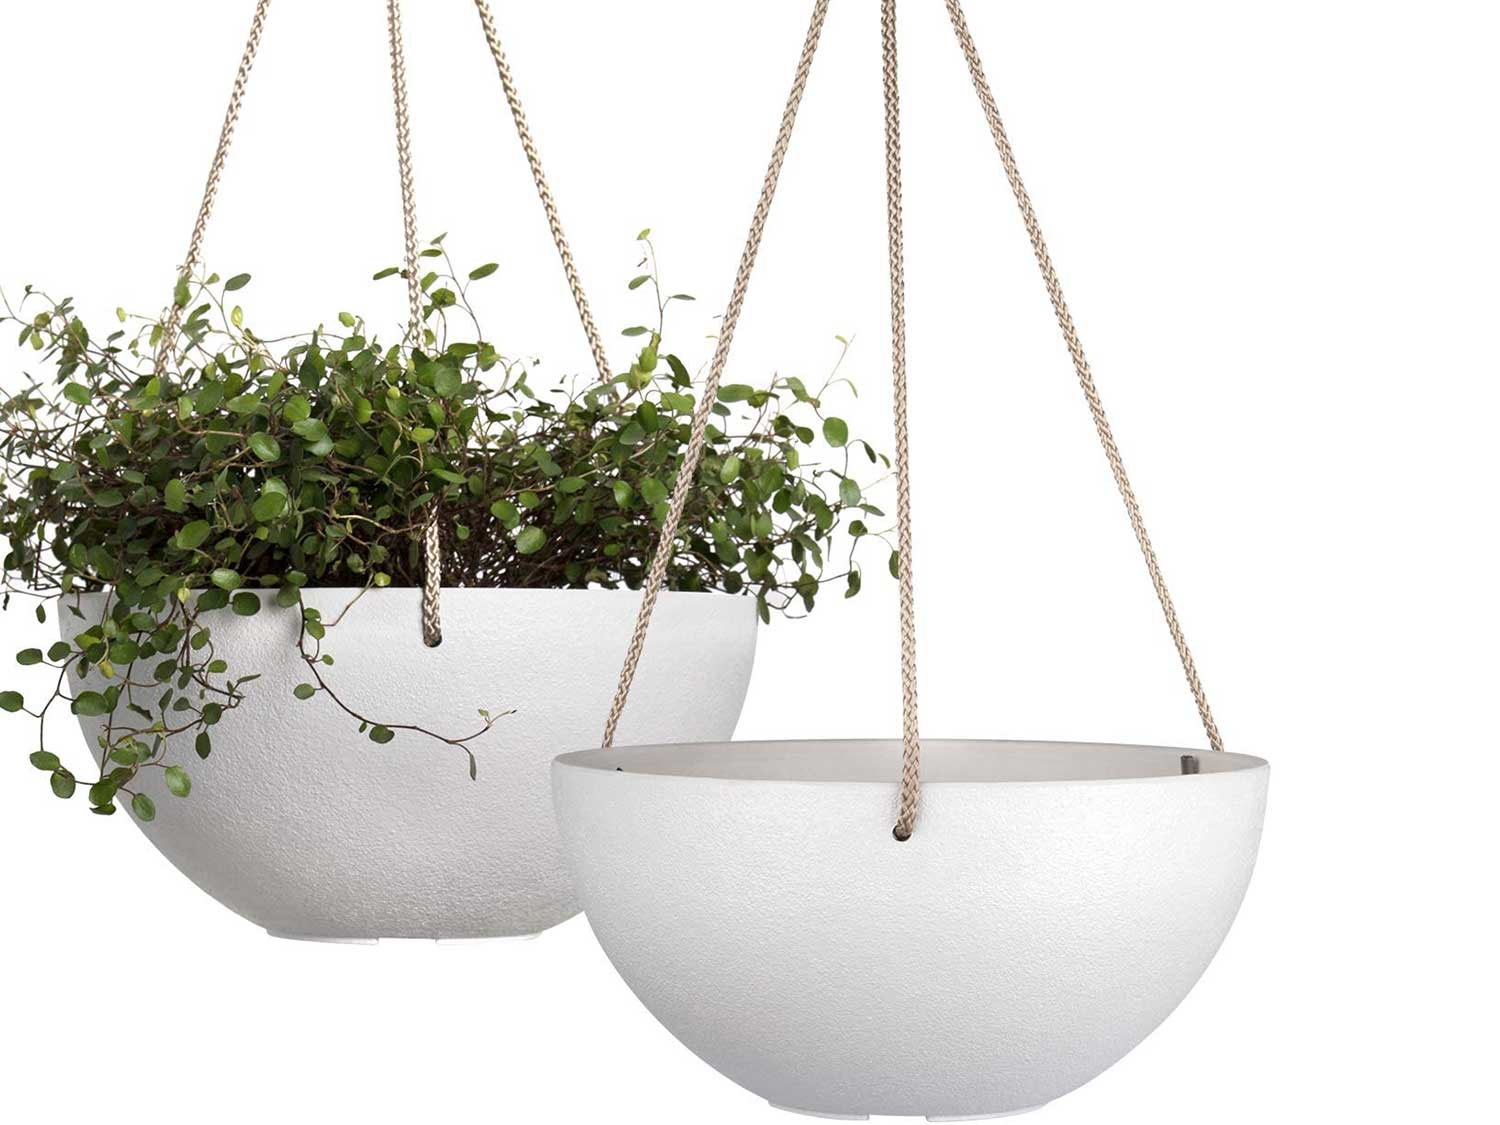 Hanging Baskets To Bring The Outdoors, Outdoor Hanging Baskets For Plants